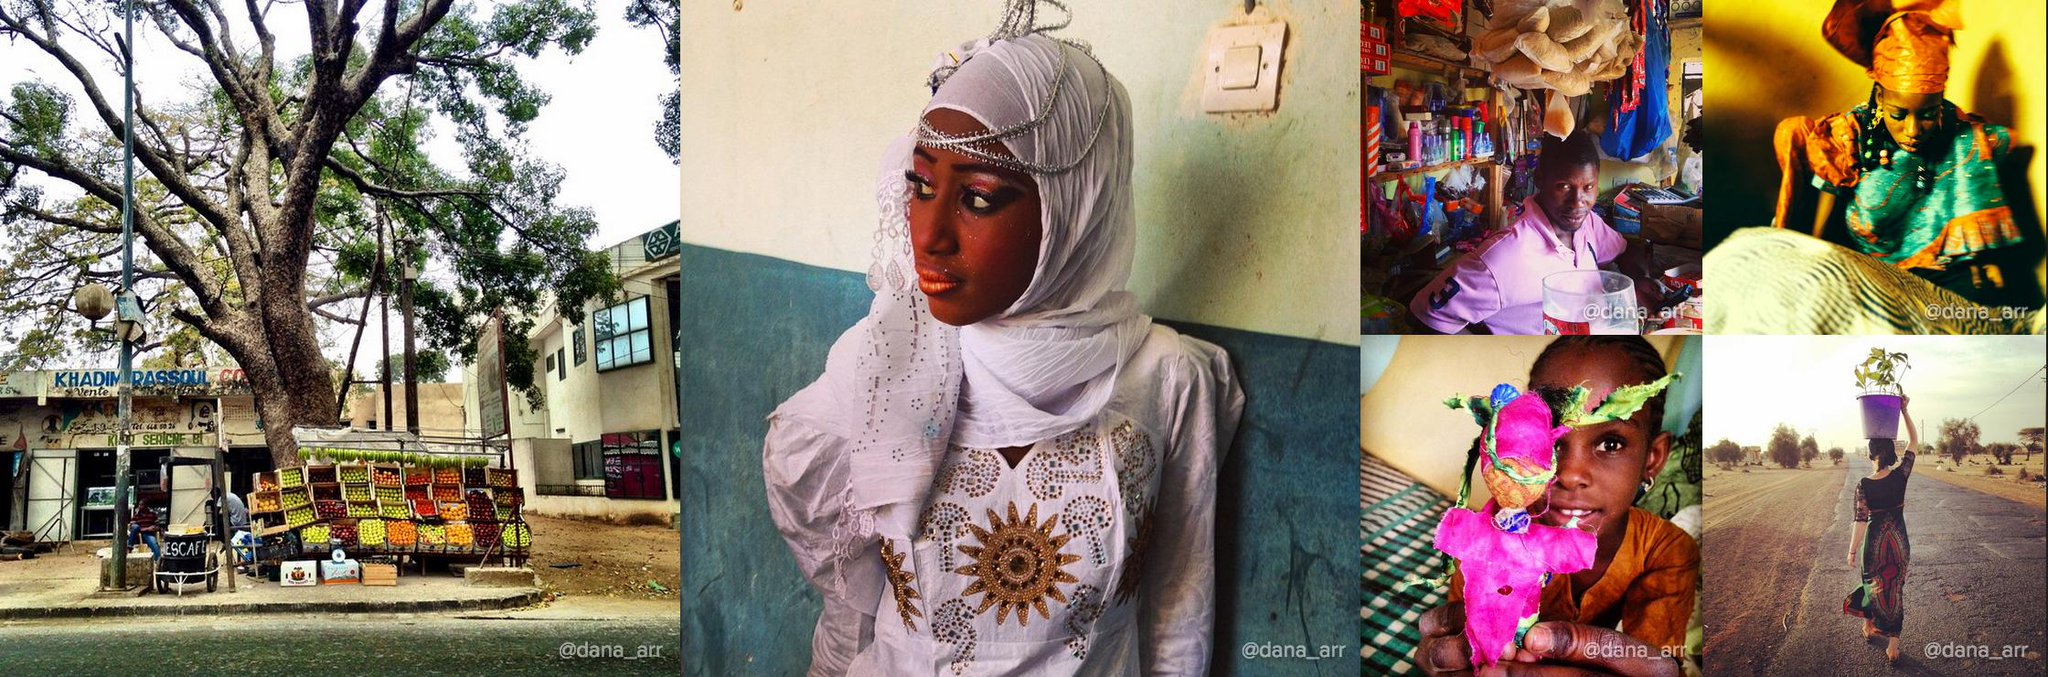 A journey of self-discovery in Senegal with Peace Corps volunteer Dana Roth blog.instagram.com/post/114751833… http://t.co/0rkzXqNK7K